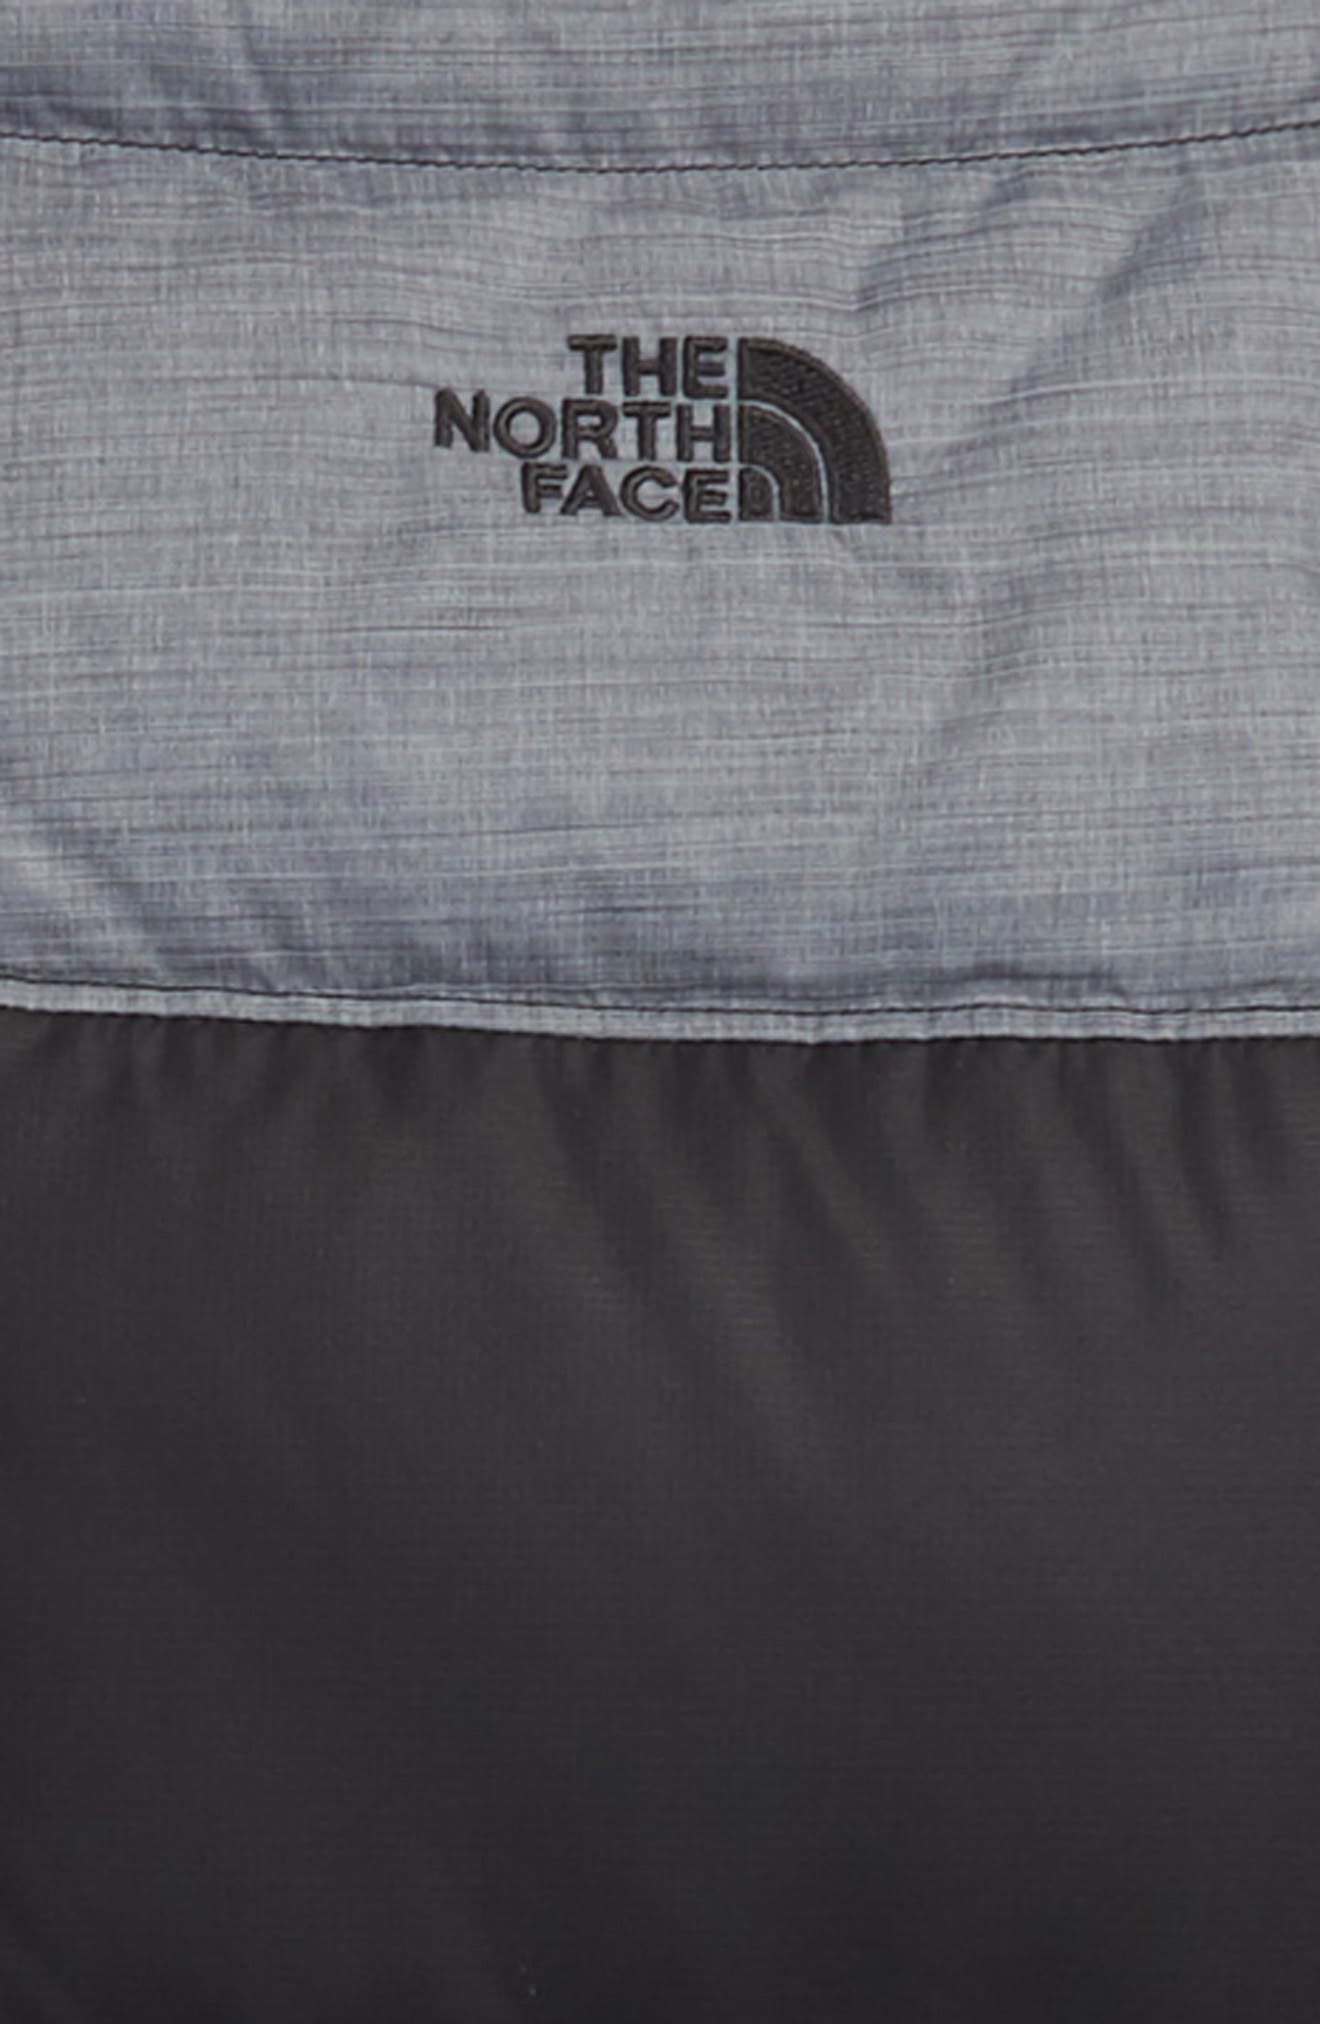 THE NORTH FACE,                             'Moondoggy' Water Repellent Reversible Down Jacket,                             Alternate thumbnail 3, color,                             BLACK/ GRAPHITE GREY